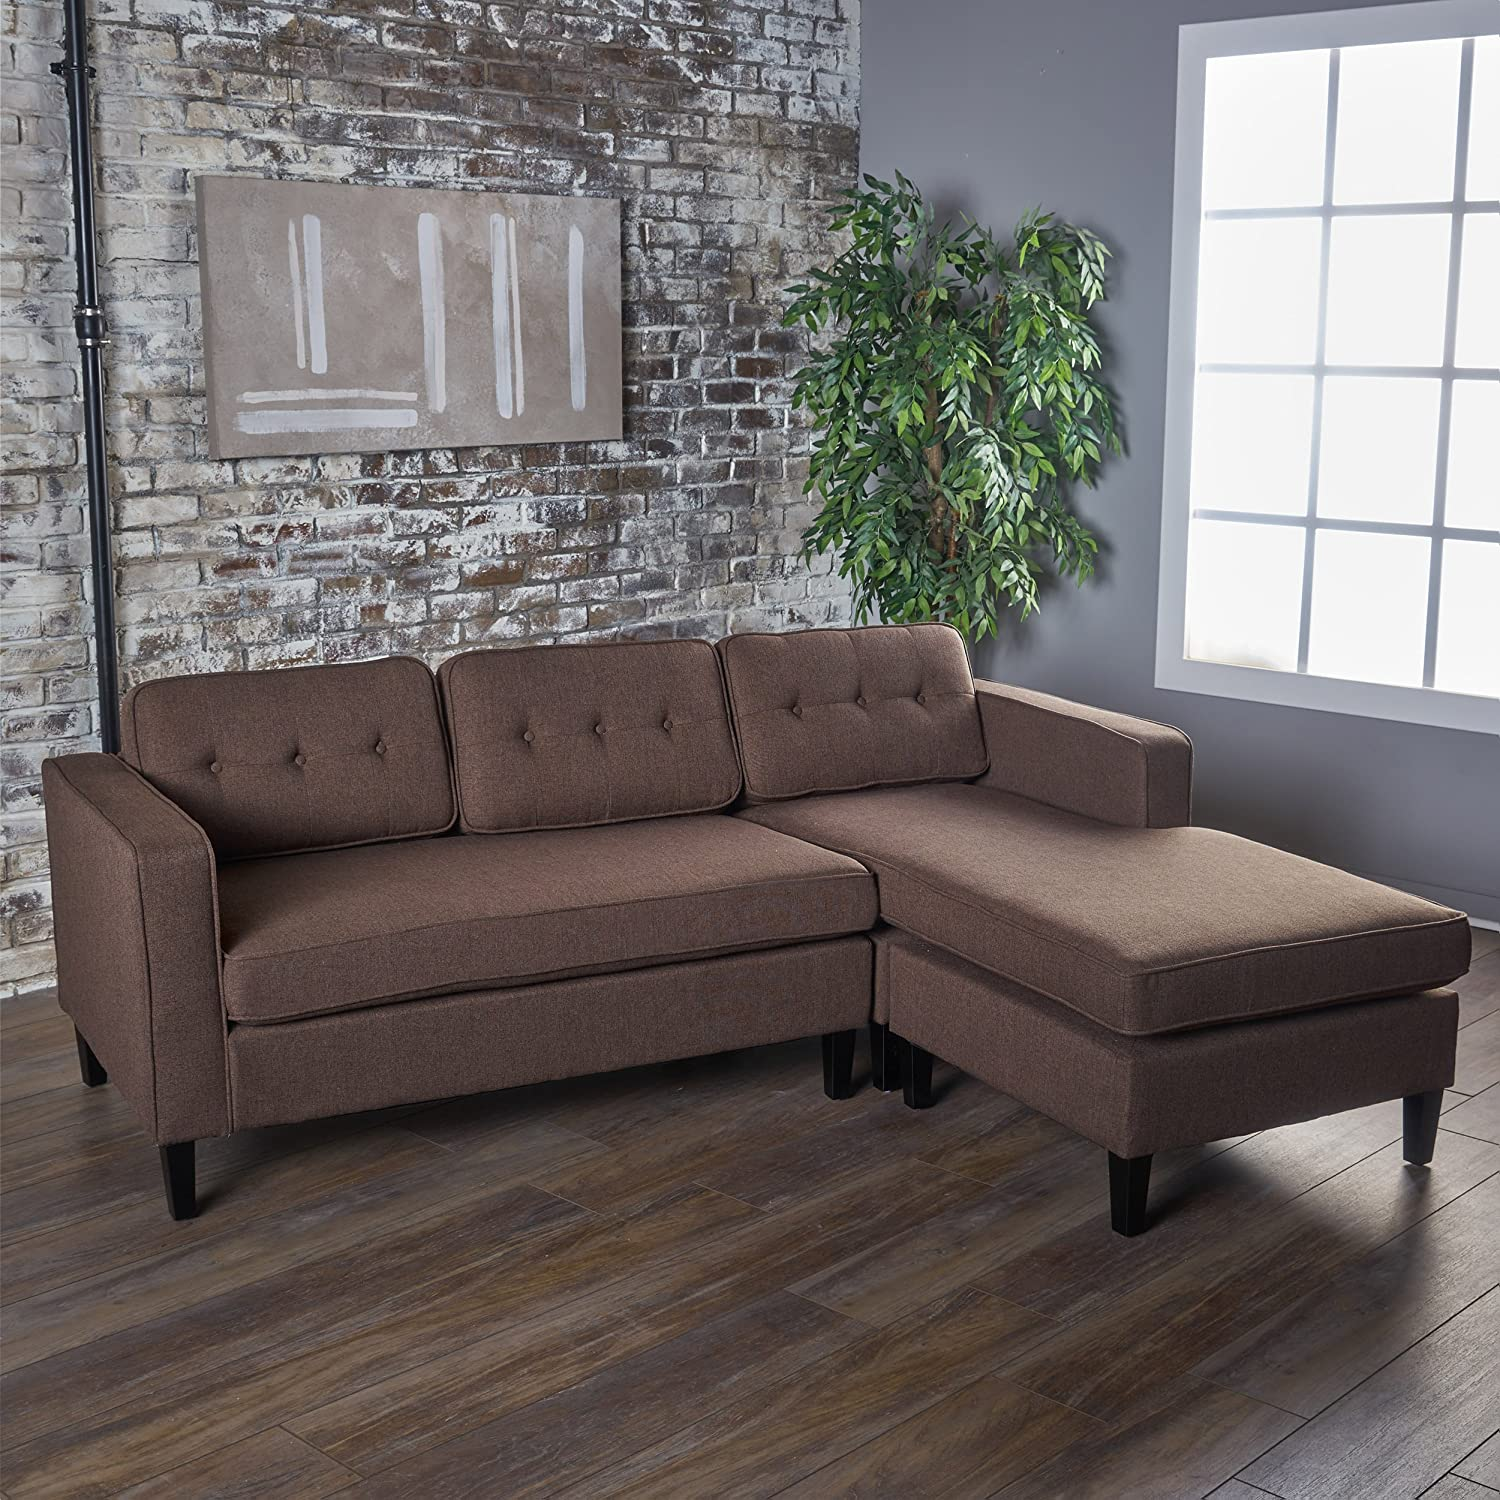 GDF Studio 301845 Windsor Room | 2 Piece Chaise Sectional Sofa | Ideal for  Small Apartment Living | Scandinavian, Mid Century Design | Fabric in Dark  ...